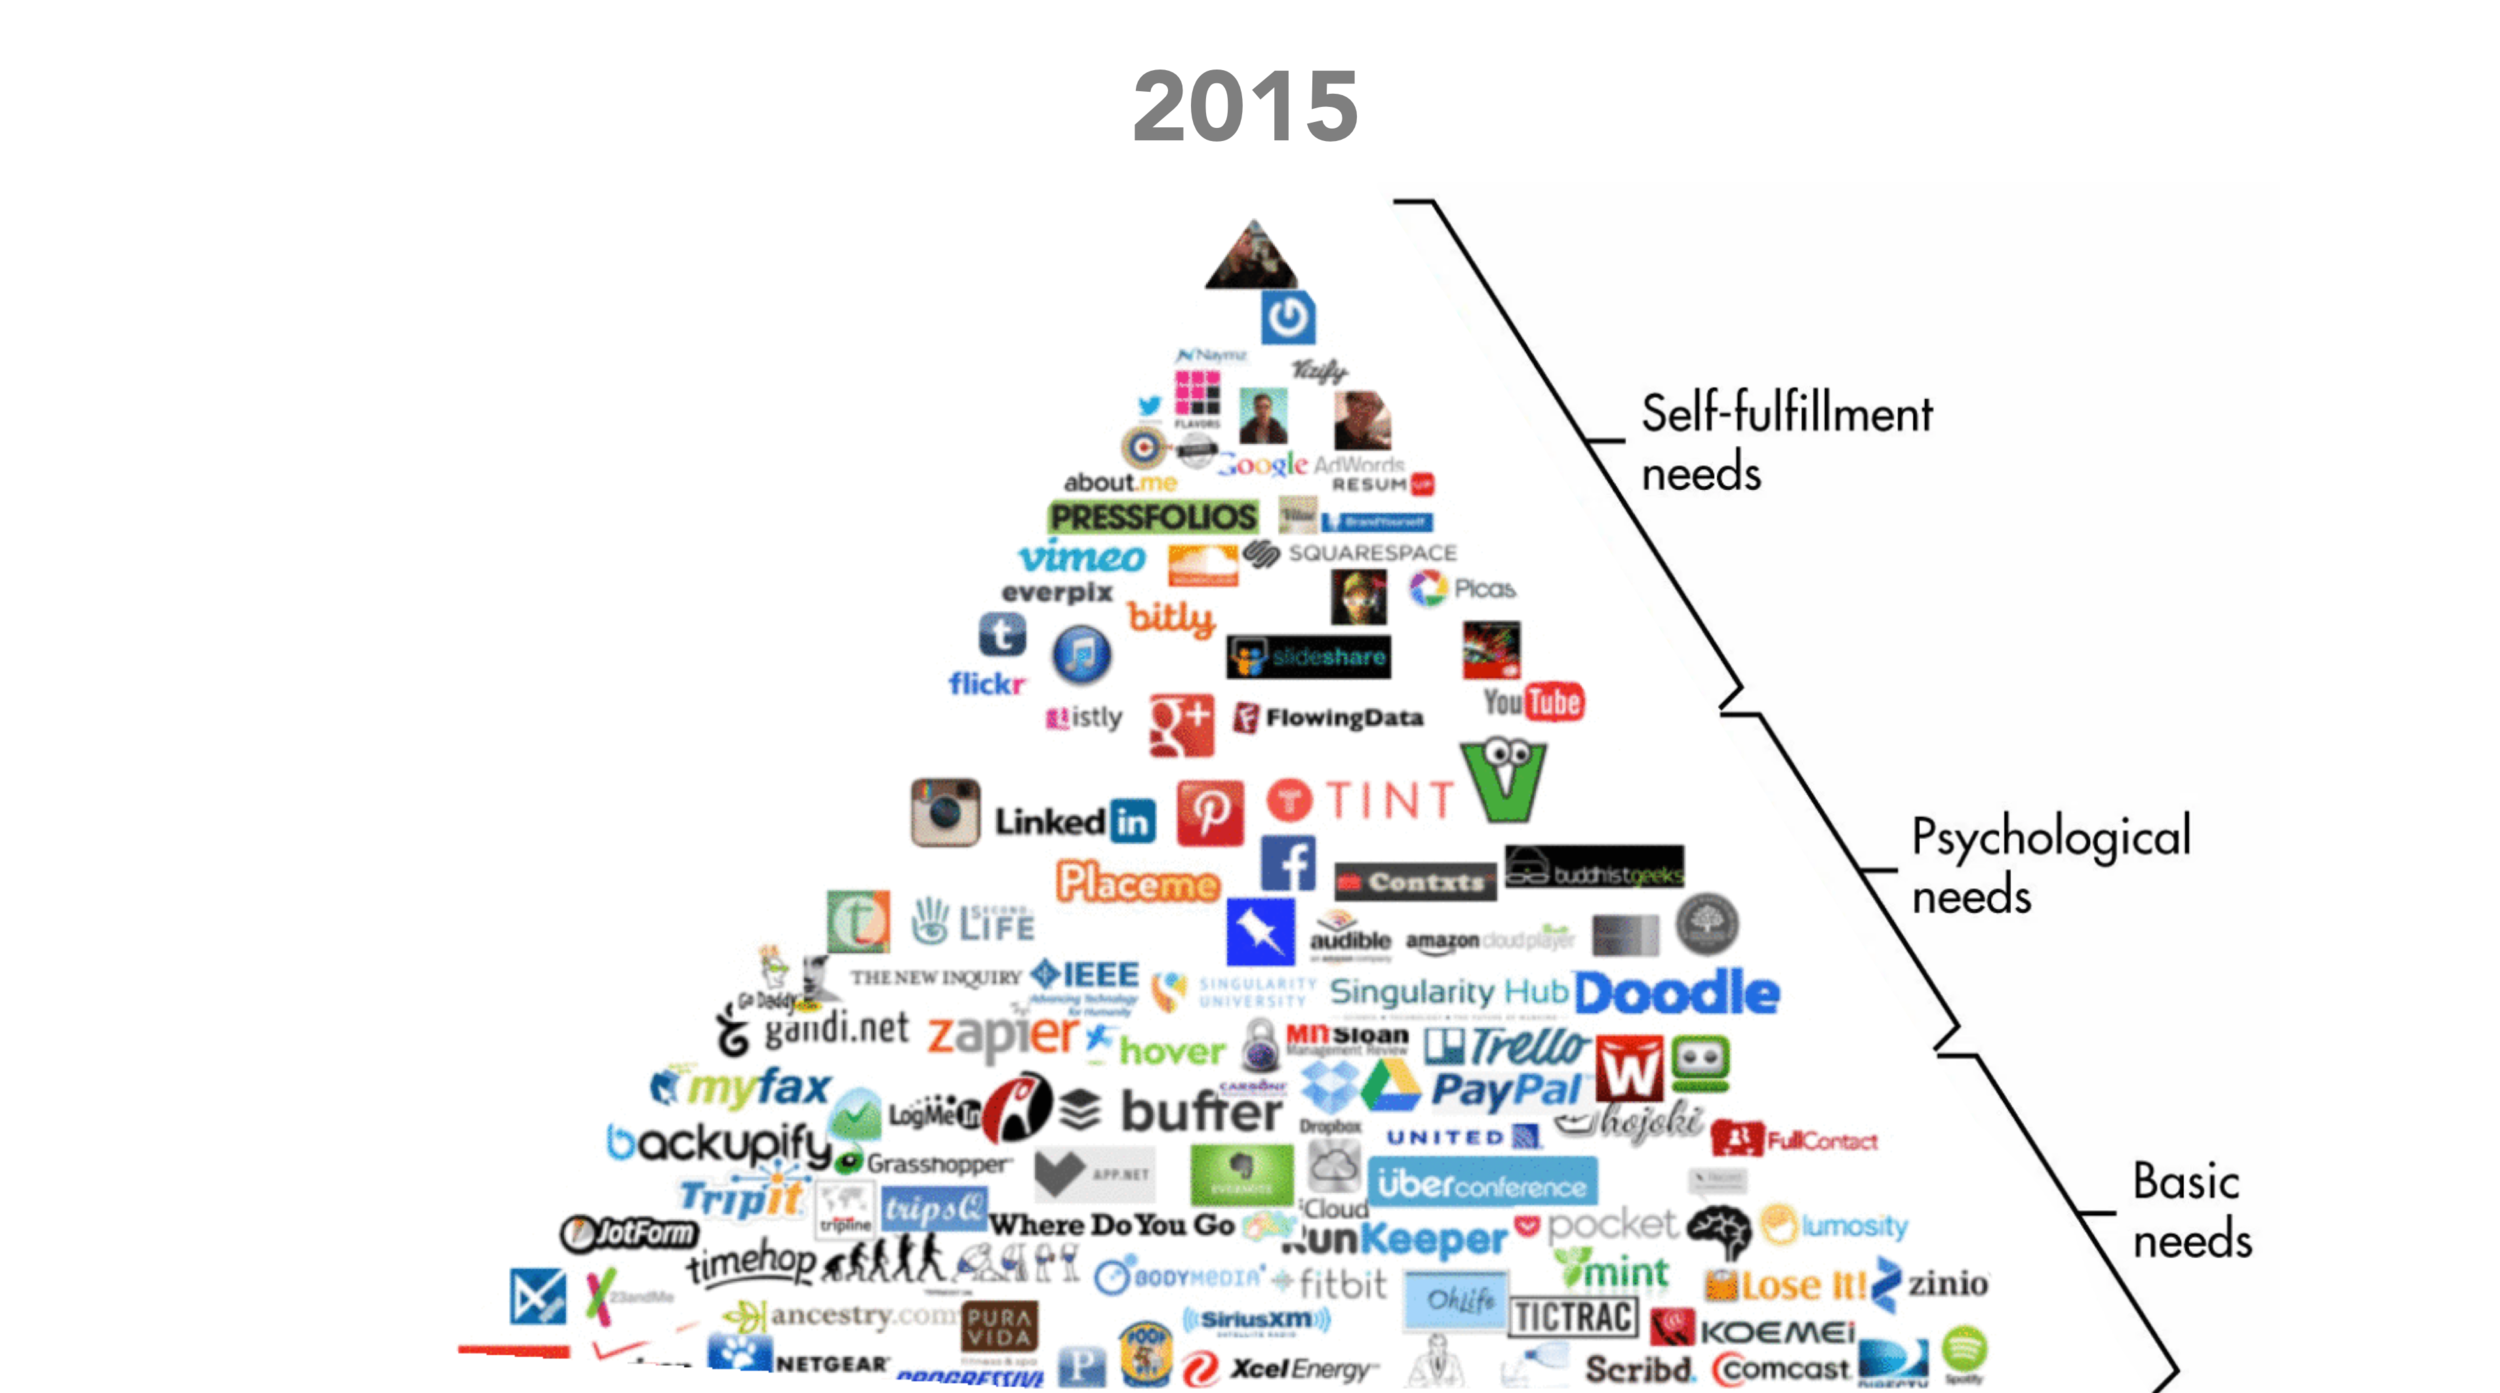 2015- DATA BY MASLOW